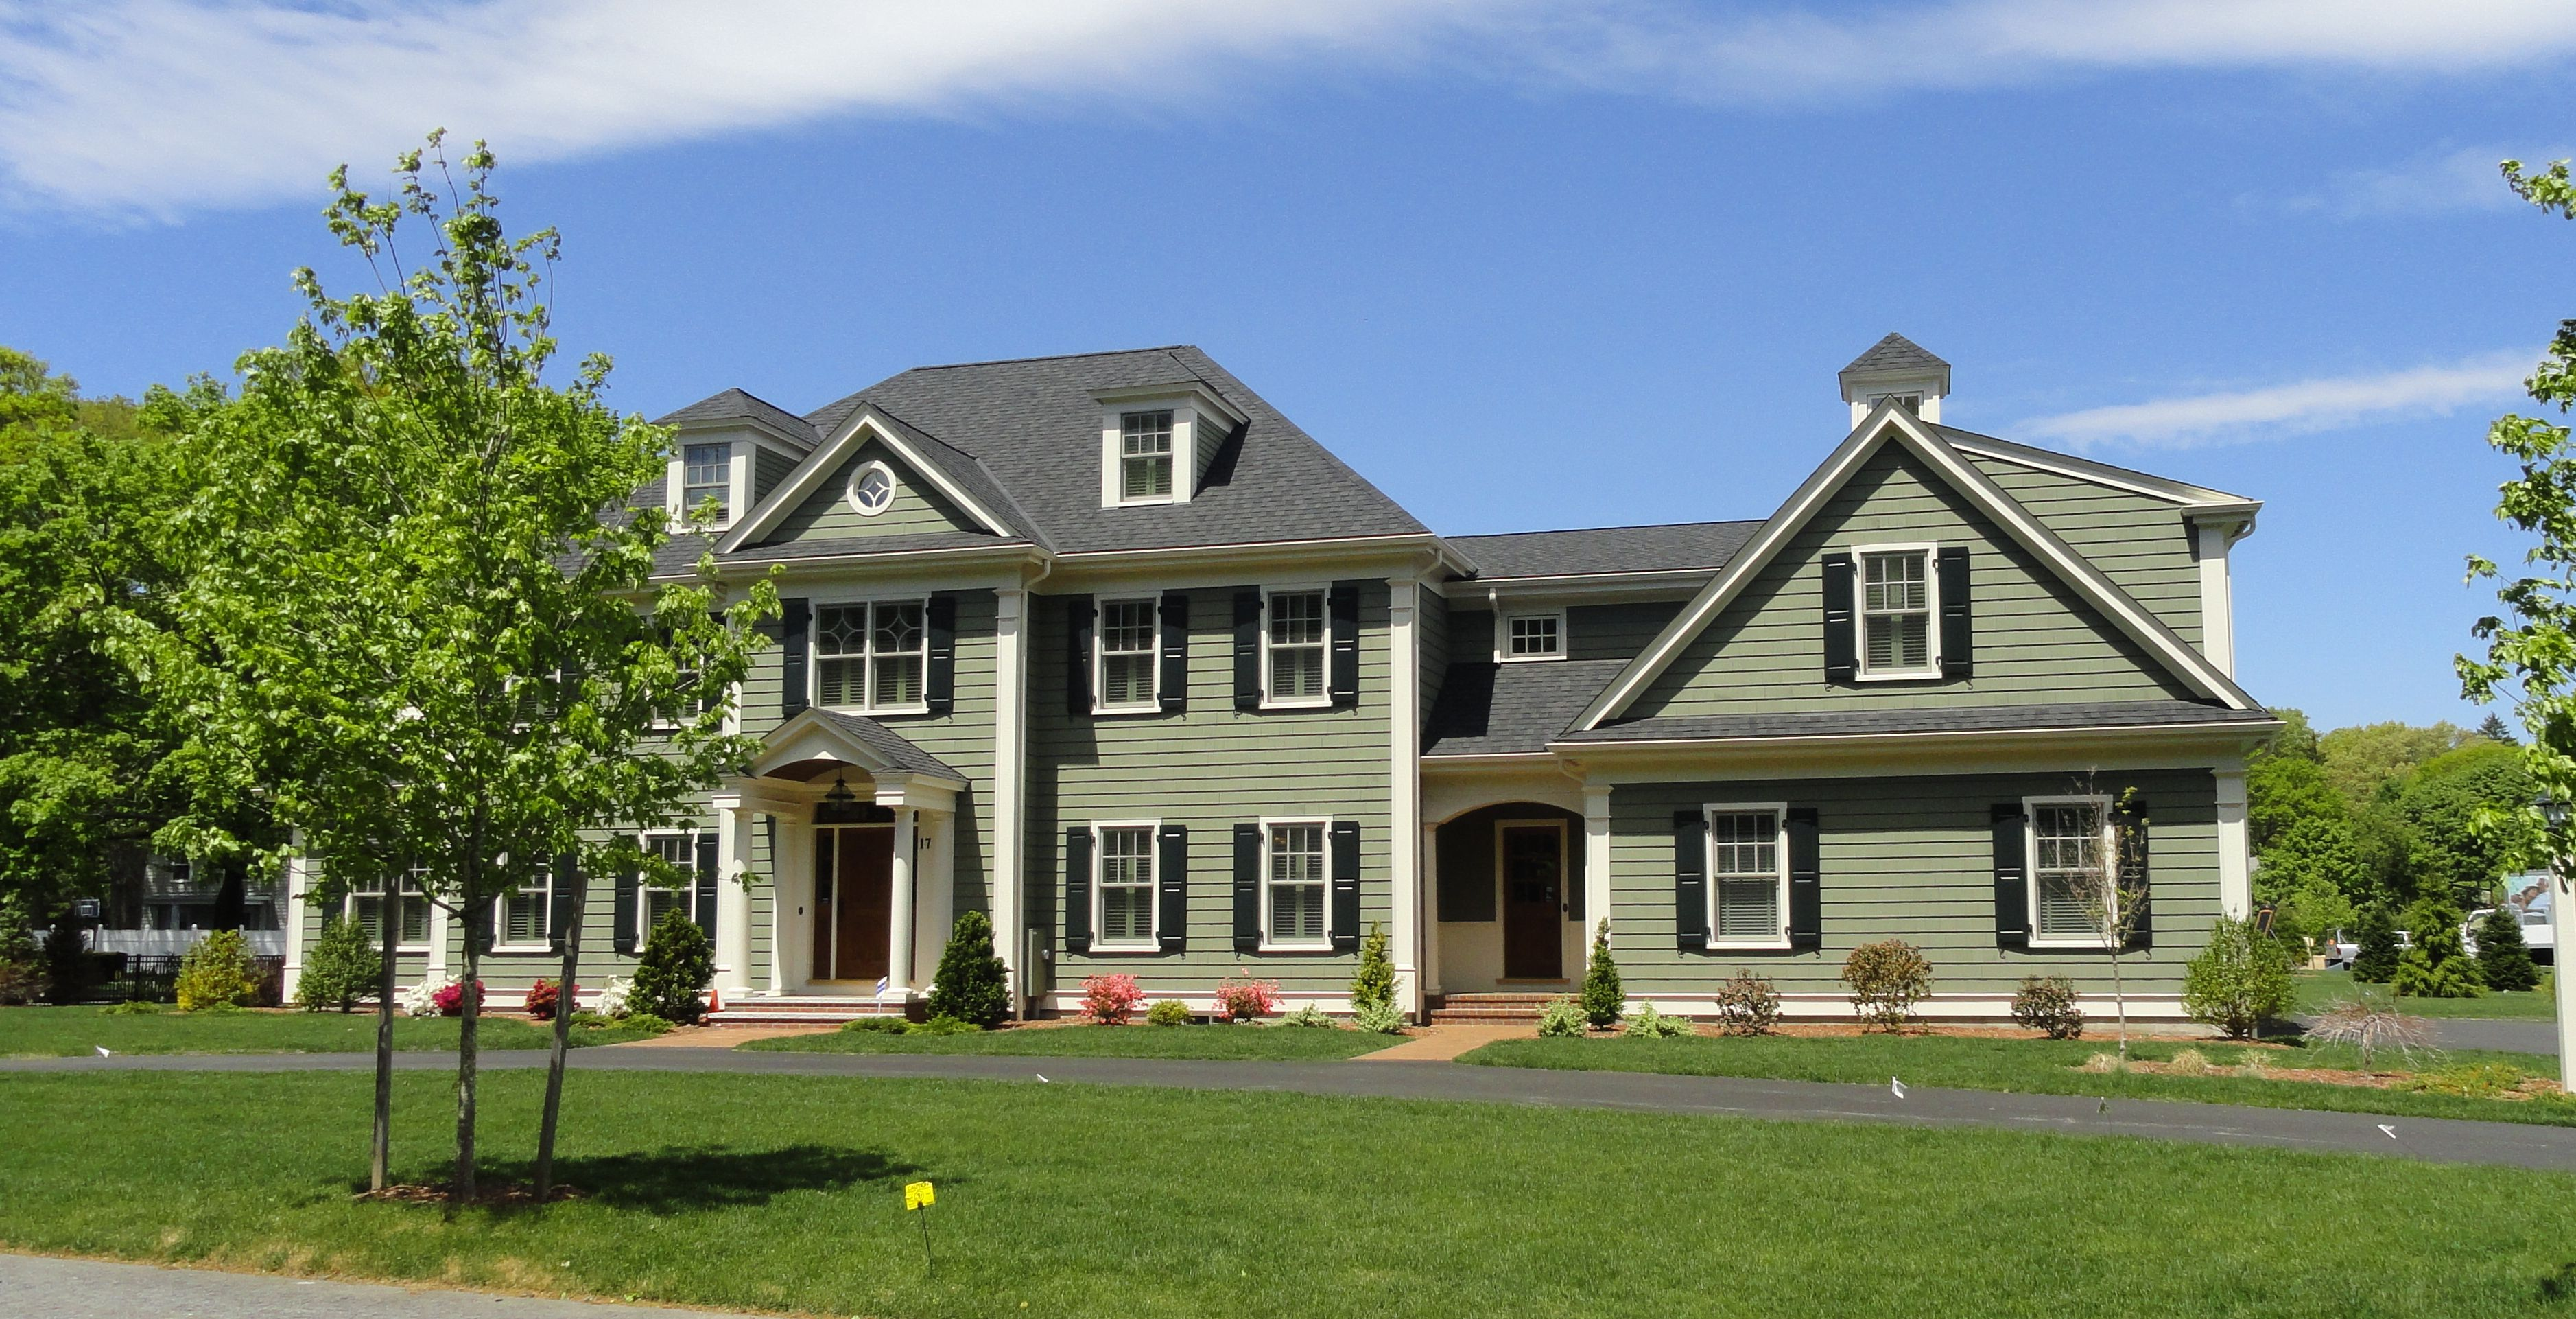 Residence colonial traditional american home design triple story house garden home project balcony cool garden homes project development from new jersey